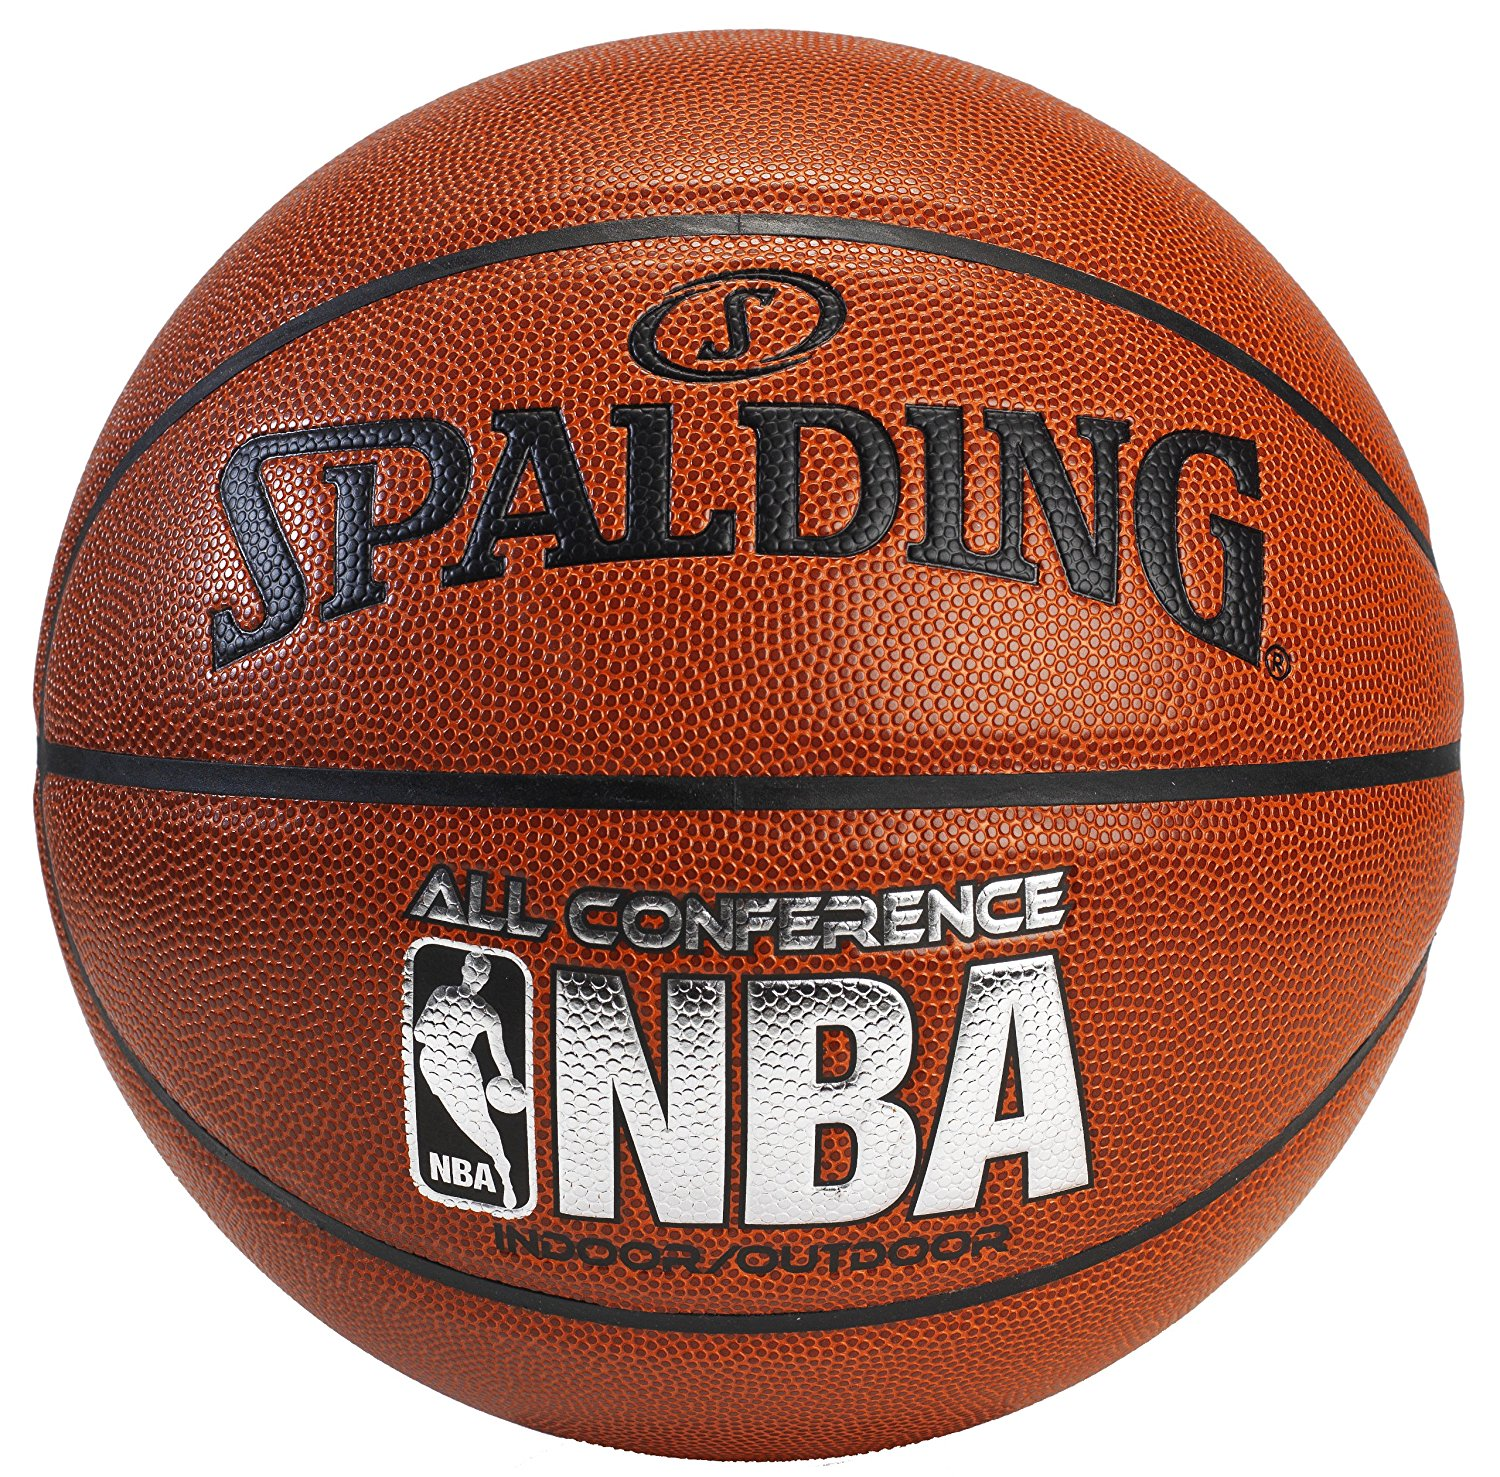 Spalding NBA All Conference 28.5 Comp Basketball ( 76-062 )